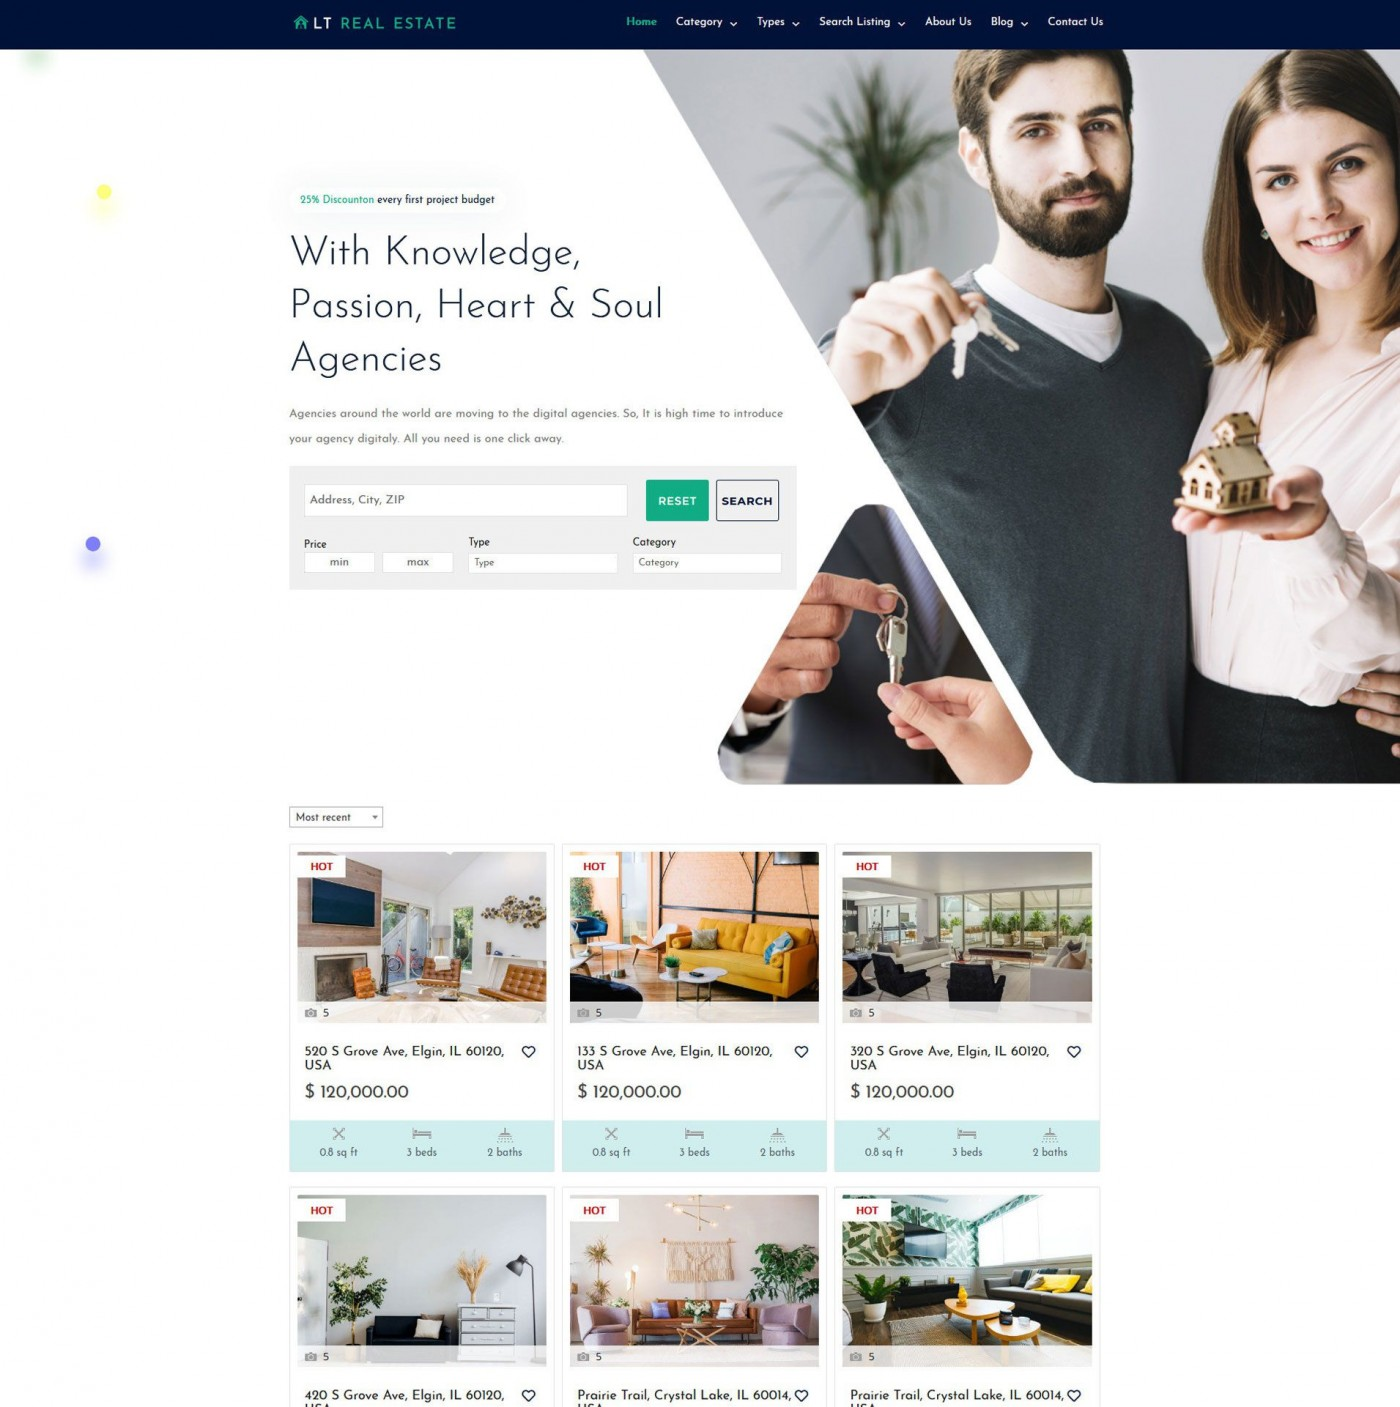 003 Rare Real Estate Template Wordpres Design  Homepres - Theme Free Download Realtyspace1400